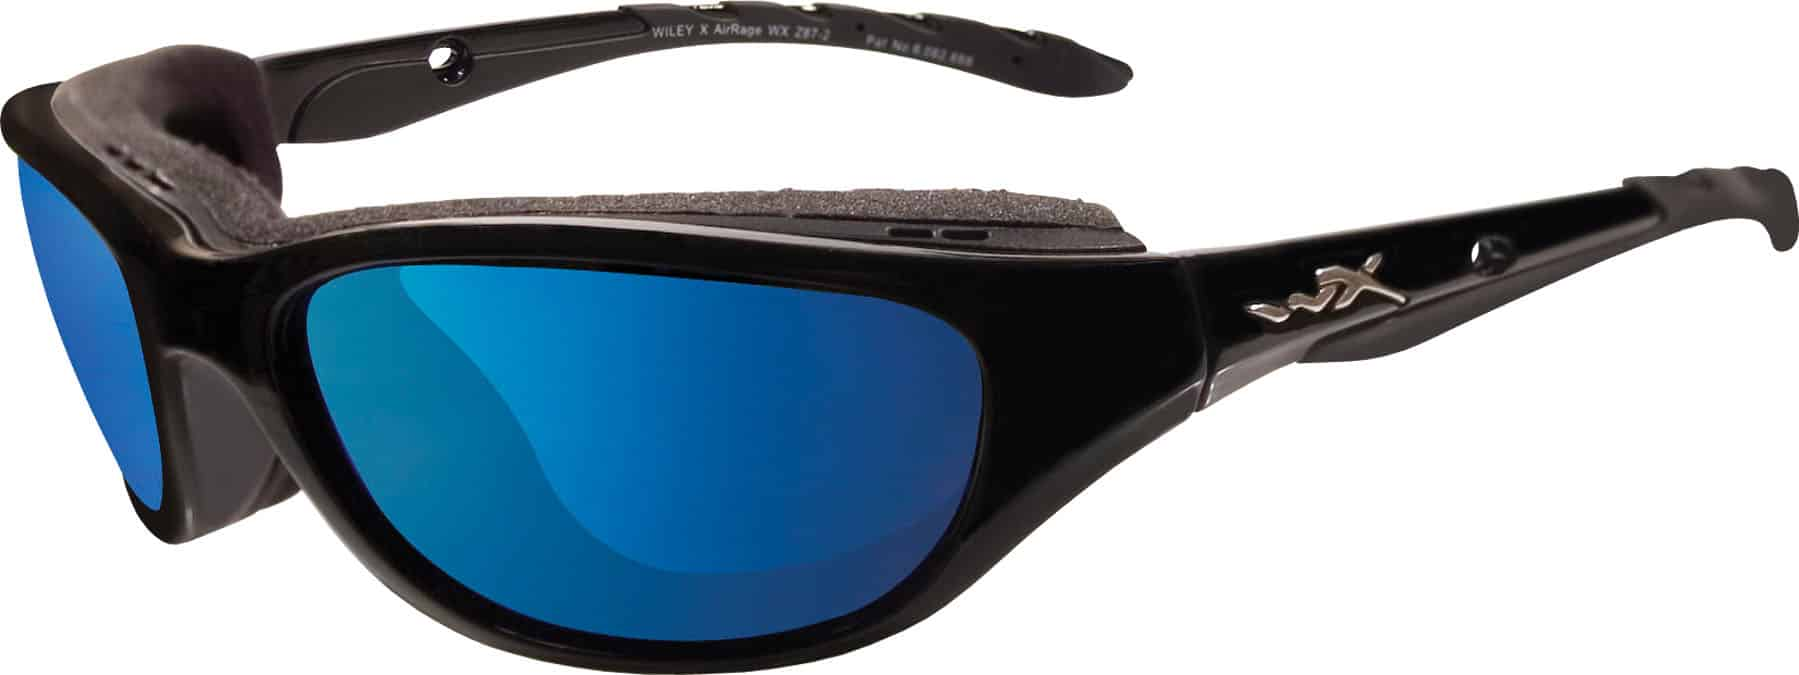 Airrage Climate Controlled Sunglasses 2